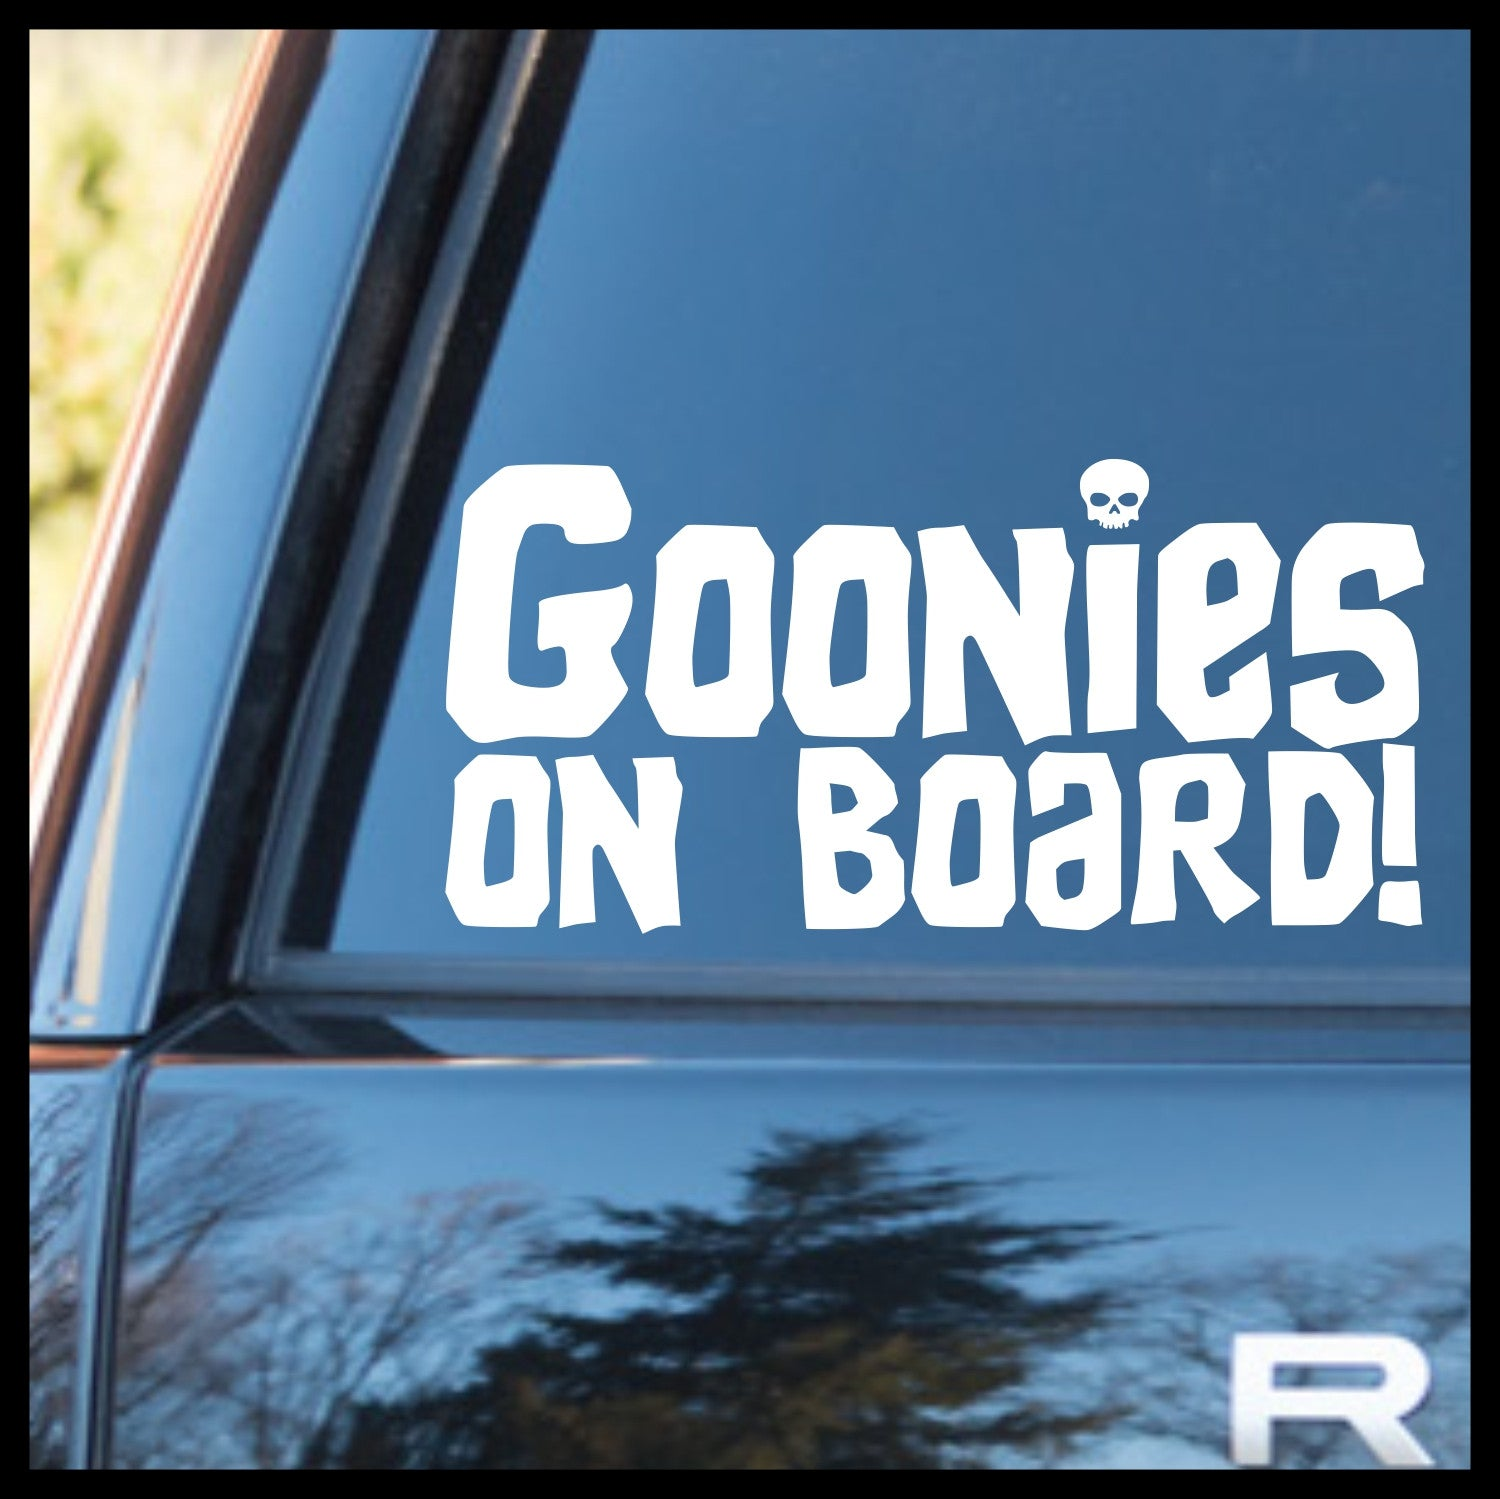 Goonies on Board! Goonies-inspired Vinyl Car/Laptop Decal